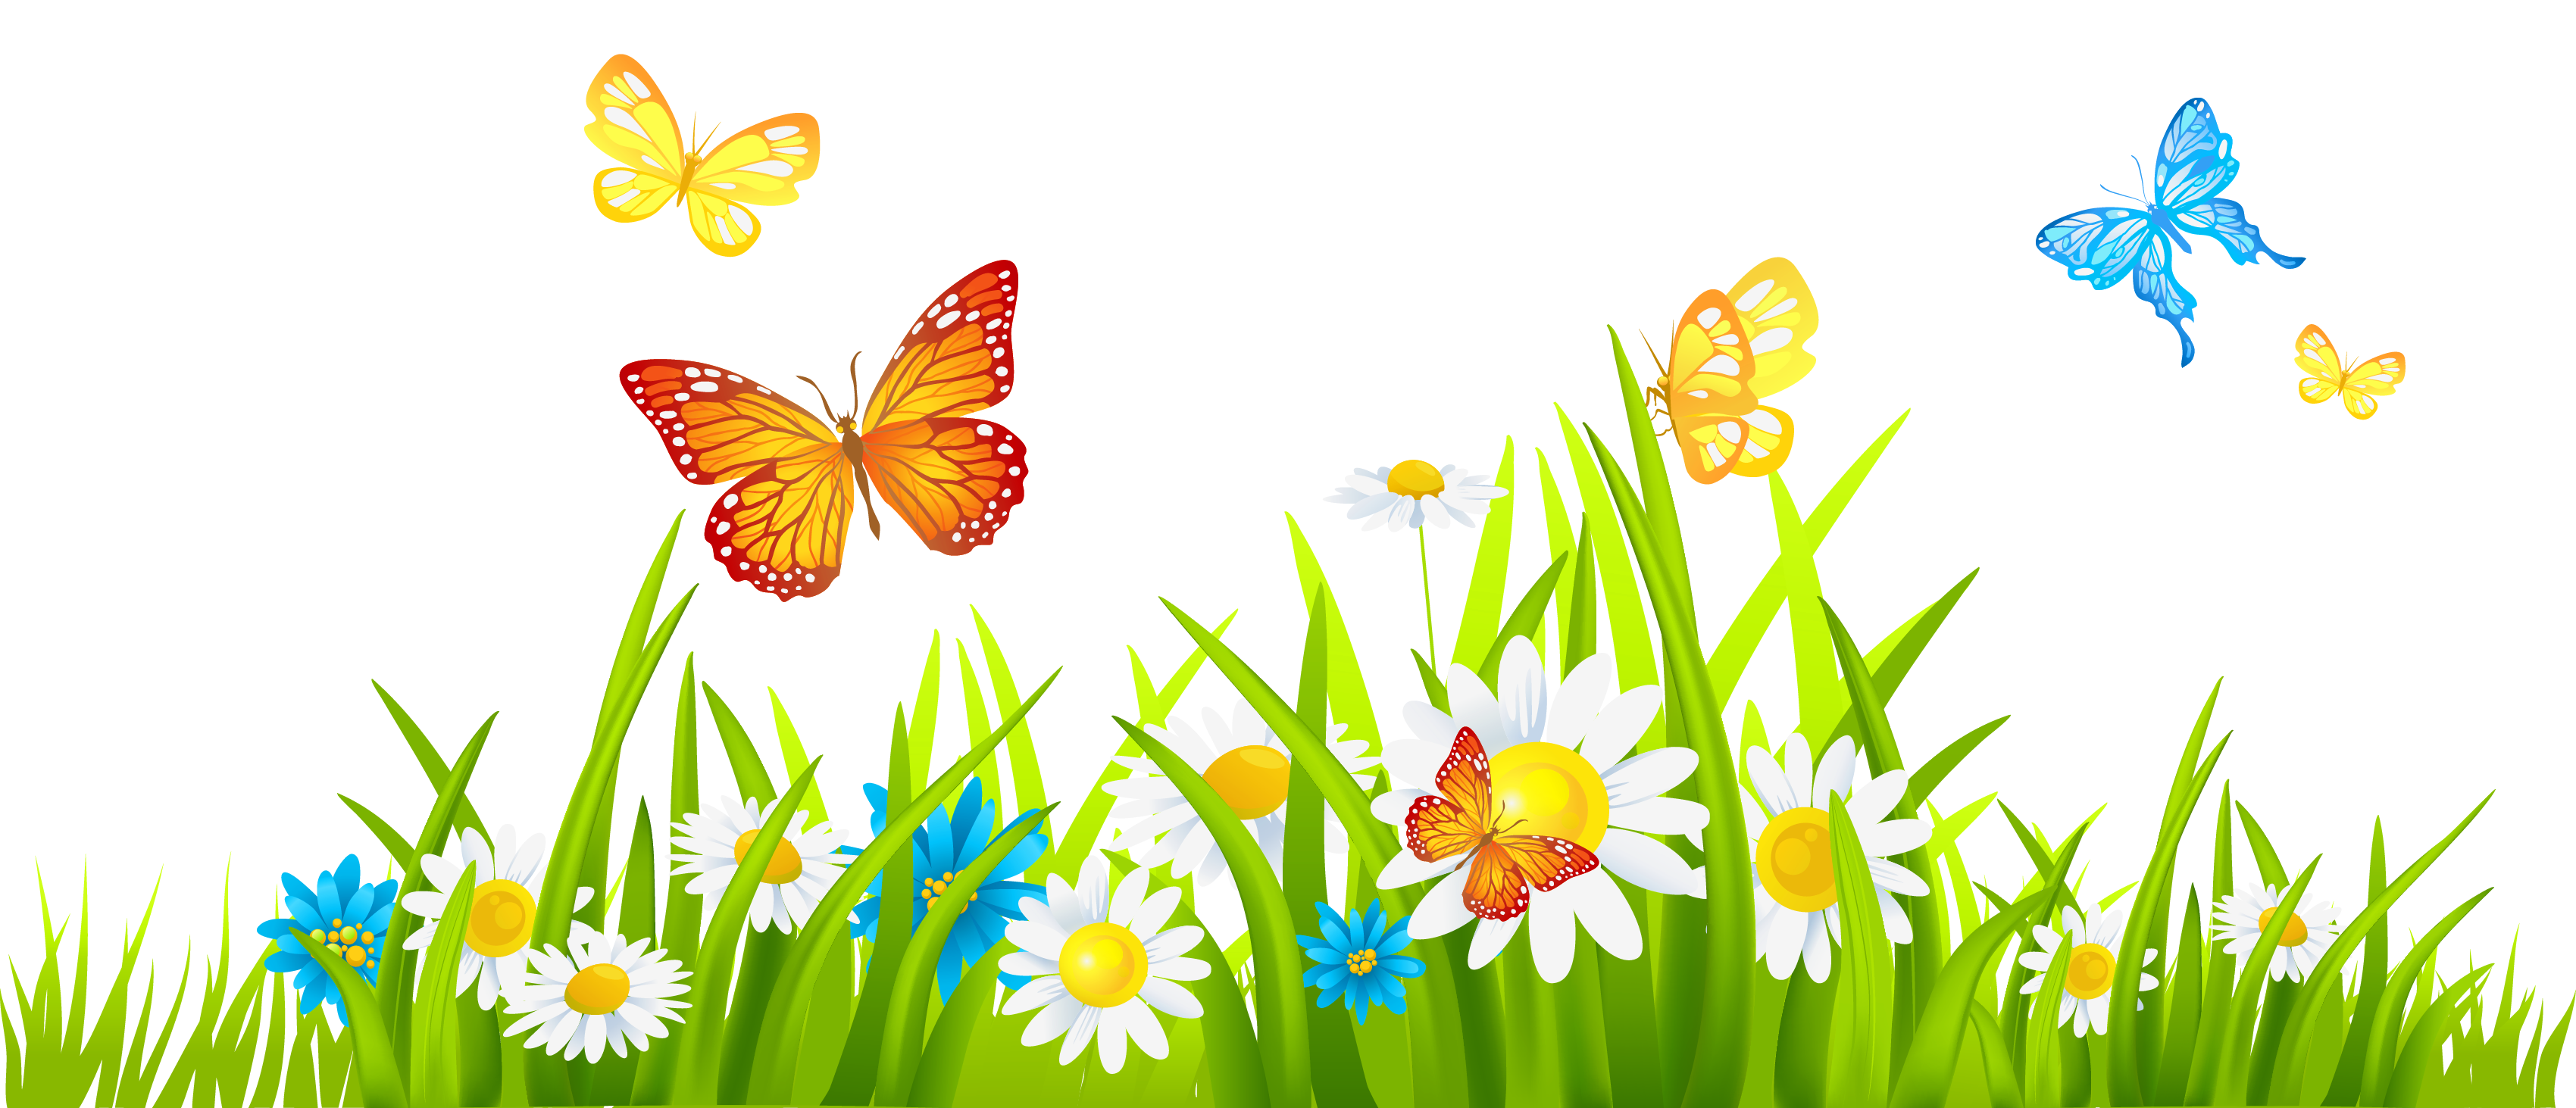 jpg freeuse Png hd of and. Butterflies clipart border.